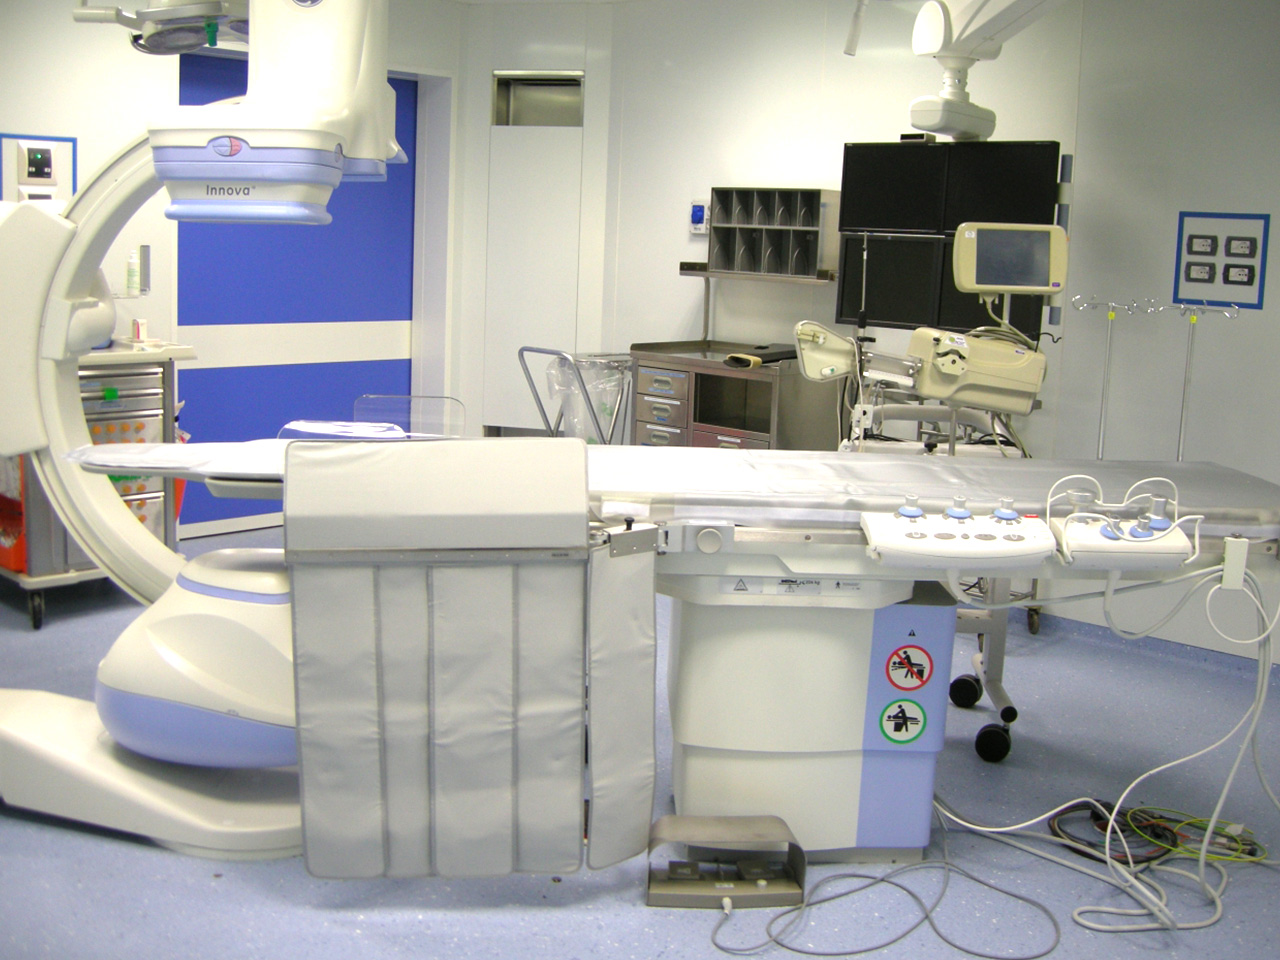 Development of OR, ICU & ER WARDS hospital areas - Modena Italy 04